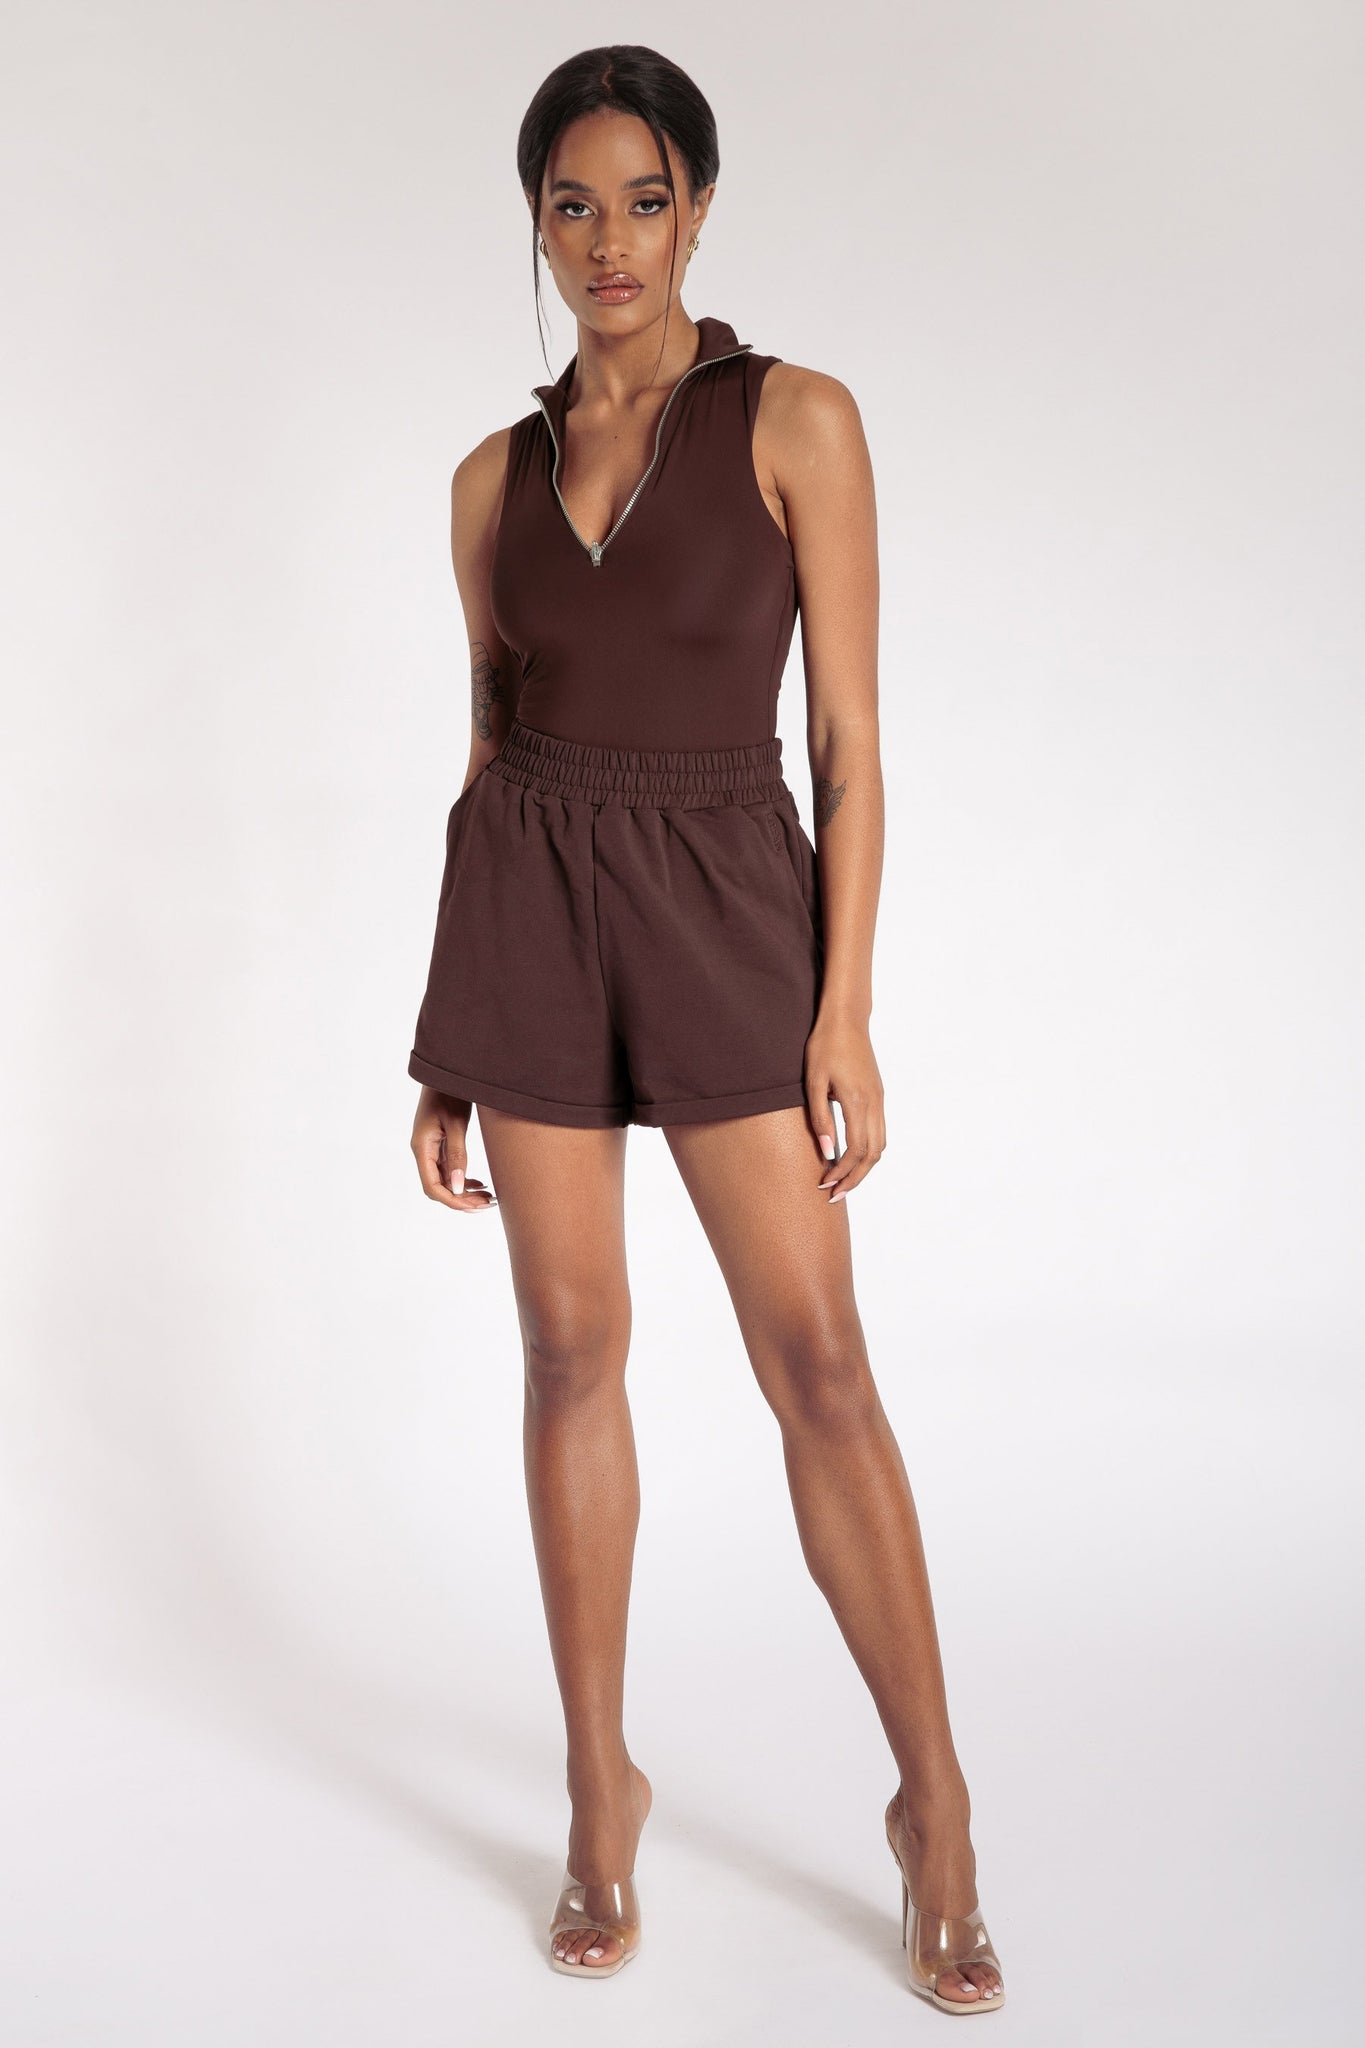 Paulina Sleeveless High Neck Zip Bodysuit - Chocolate - MESHKI